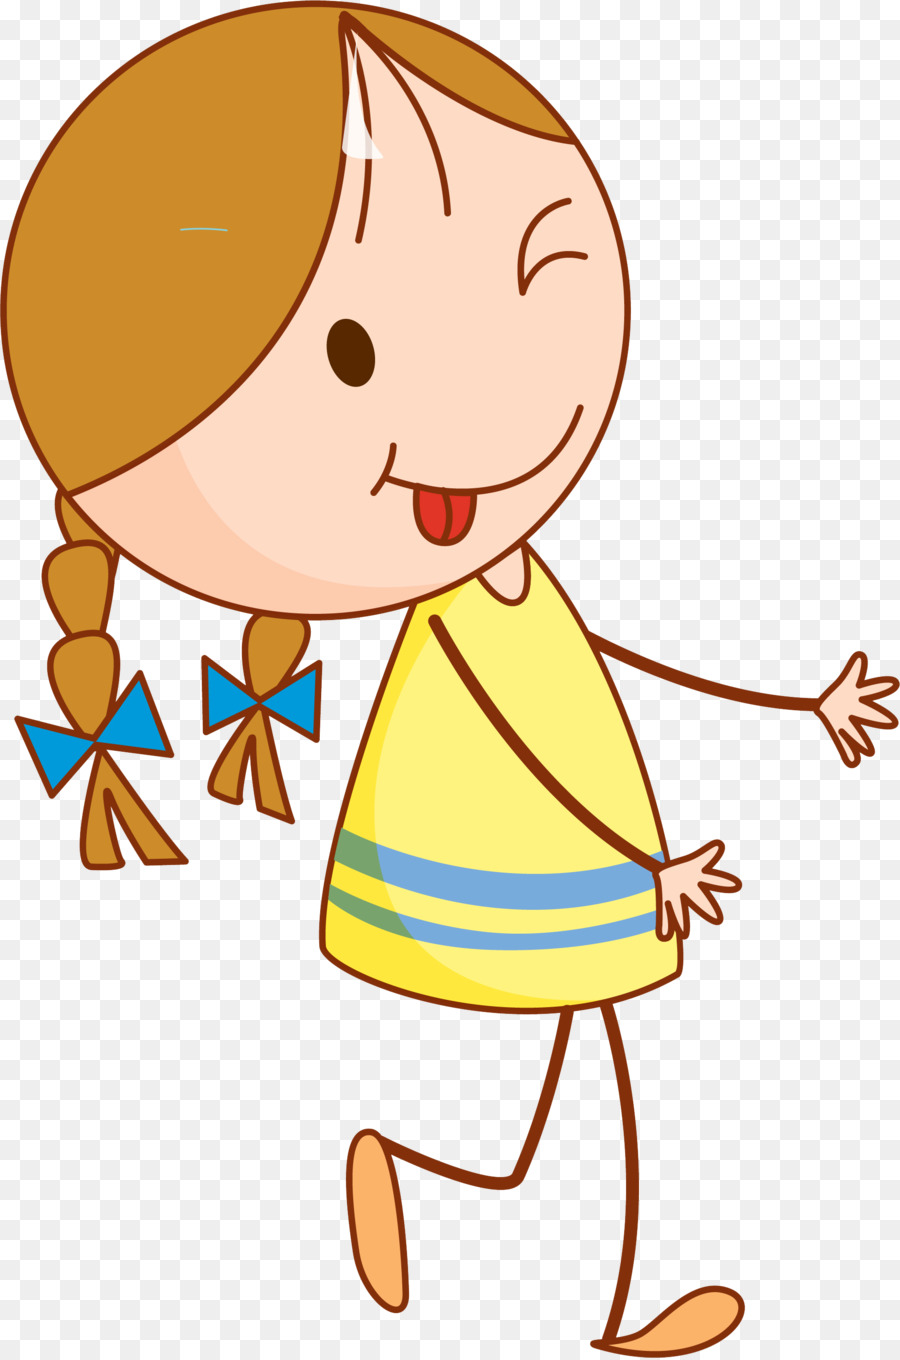 Schwester clipart picture free download Hug-Royalty-free Schwester-clipart - Kind png herunterladen ... picture free download